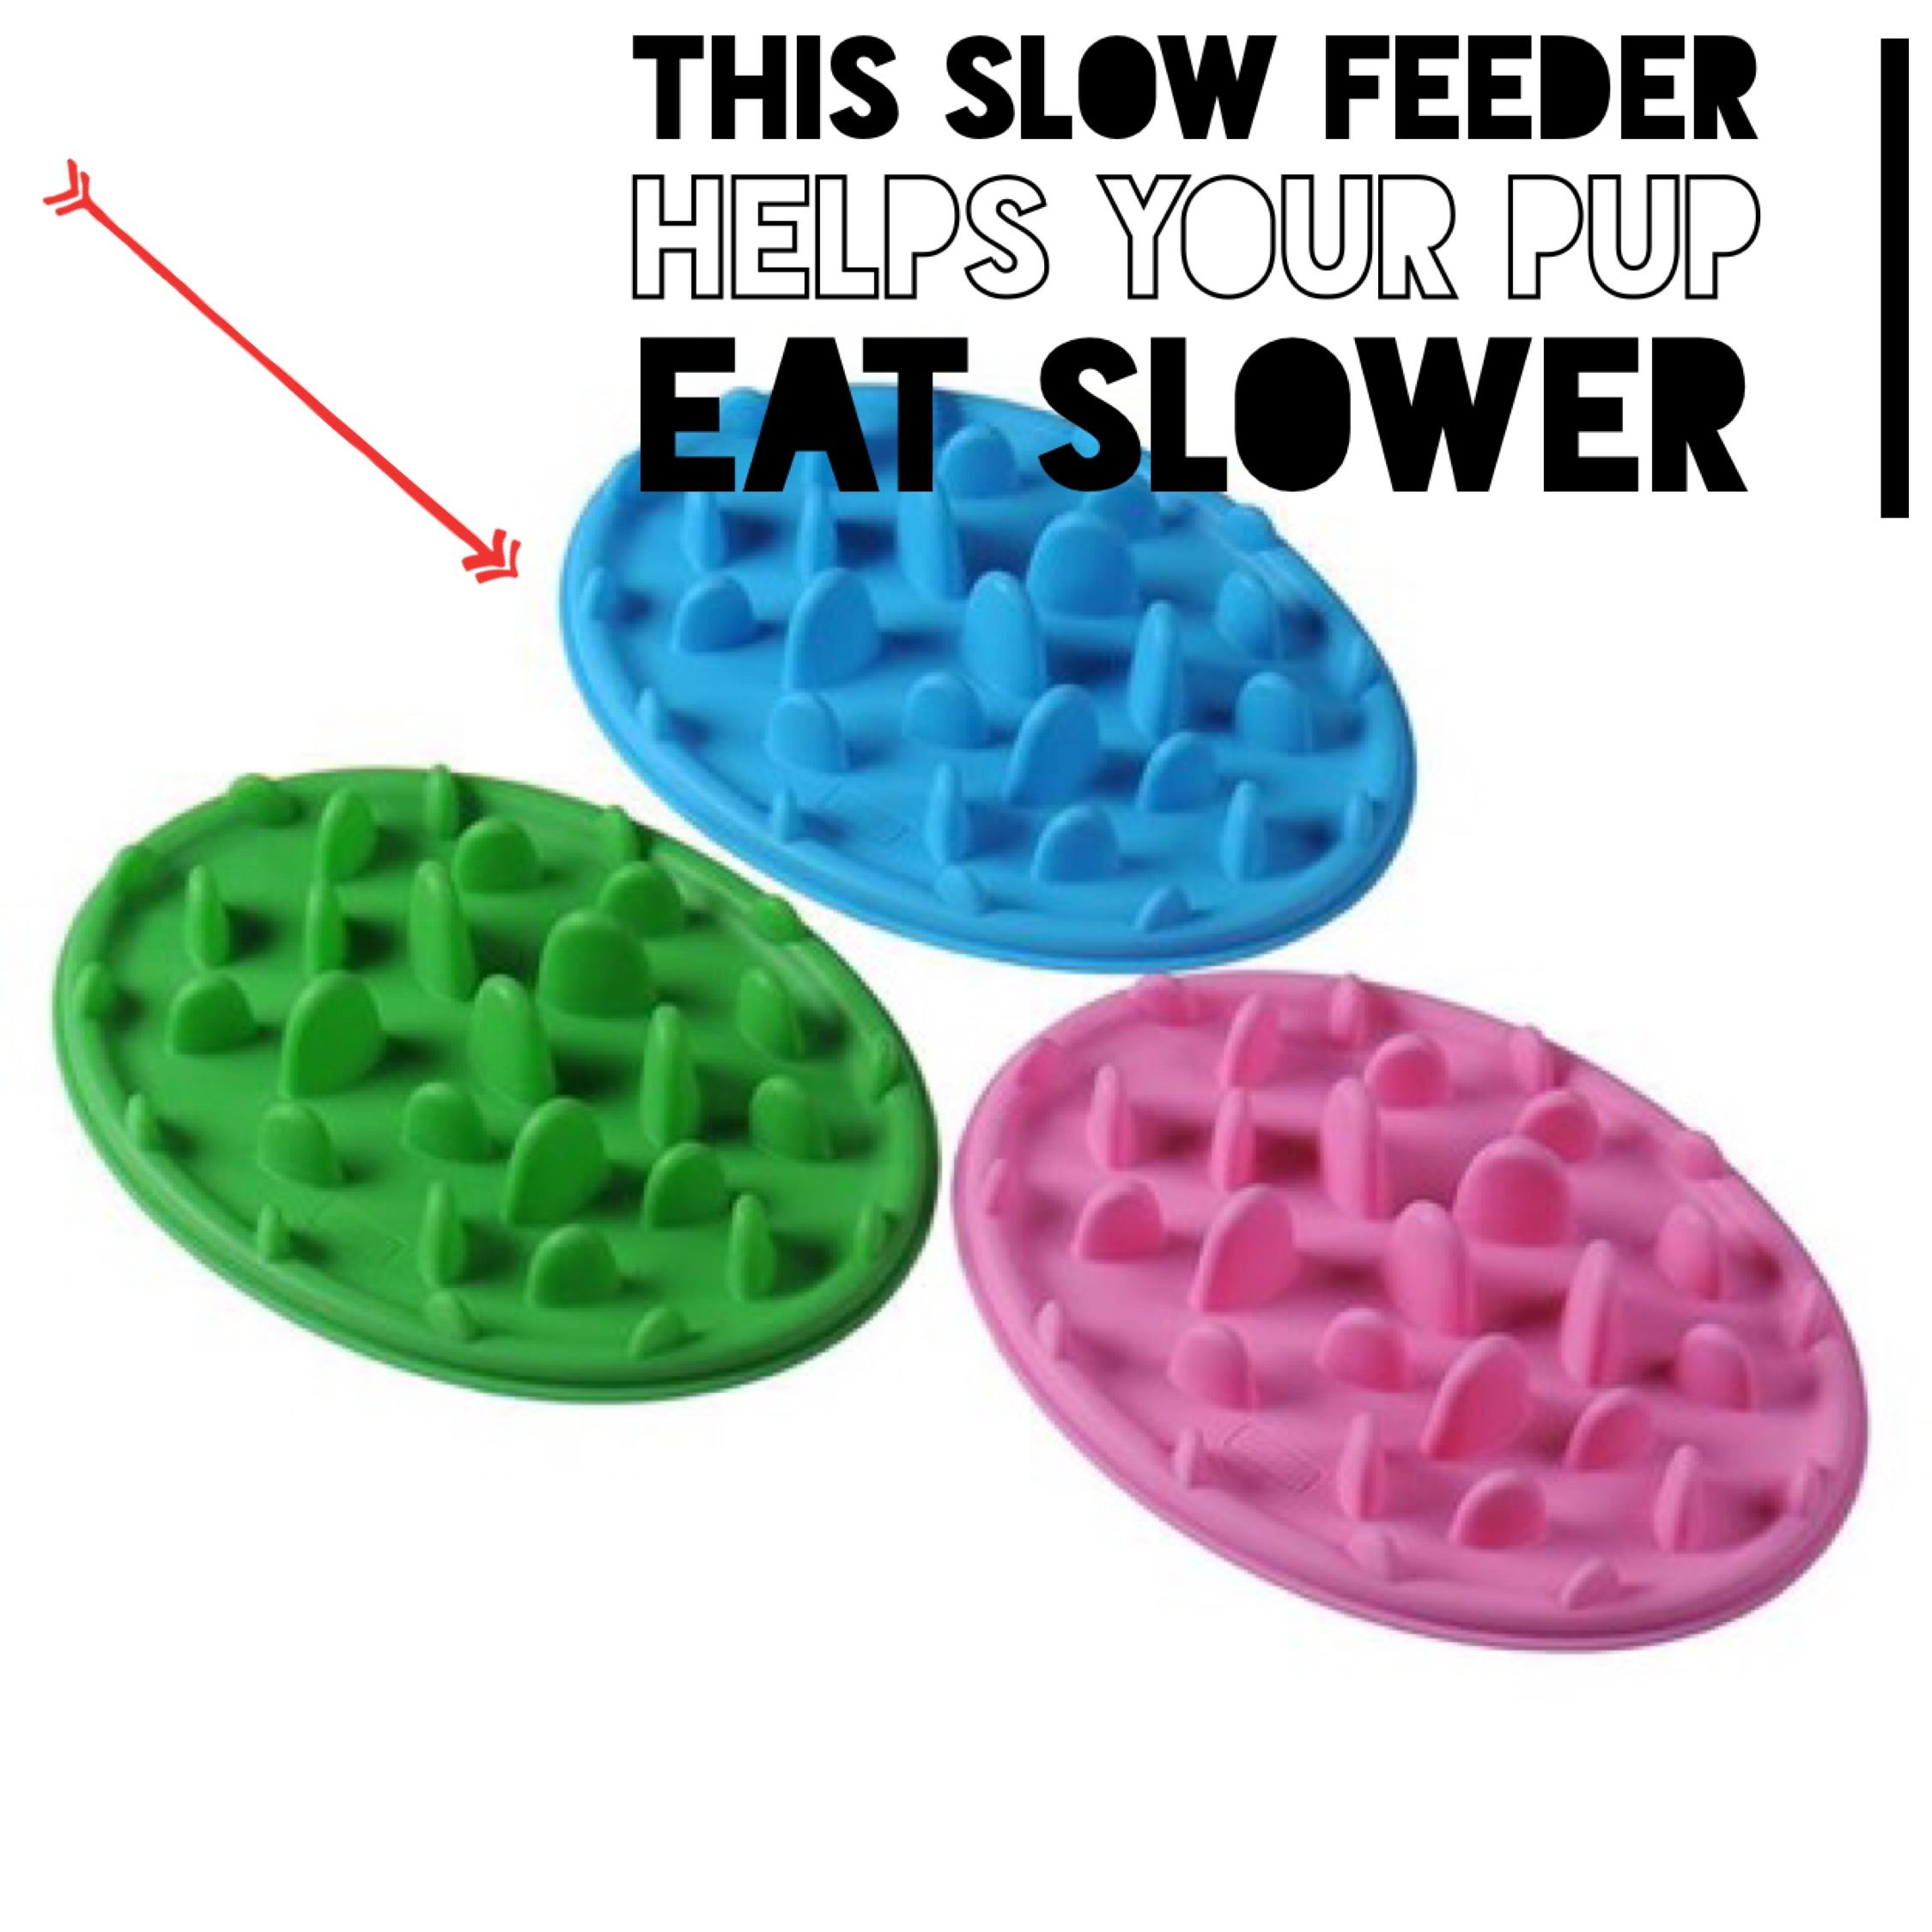 Is your pup(s) eating way too fast? The slow feeder bowl